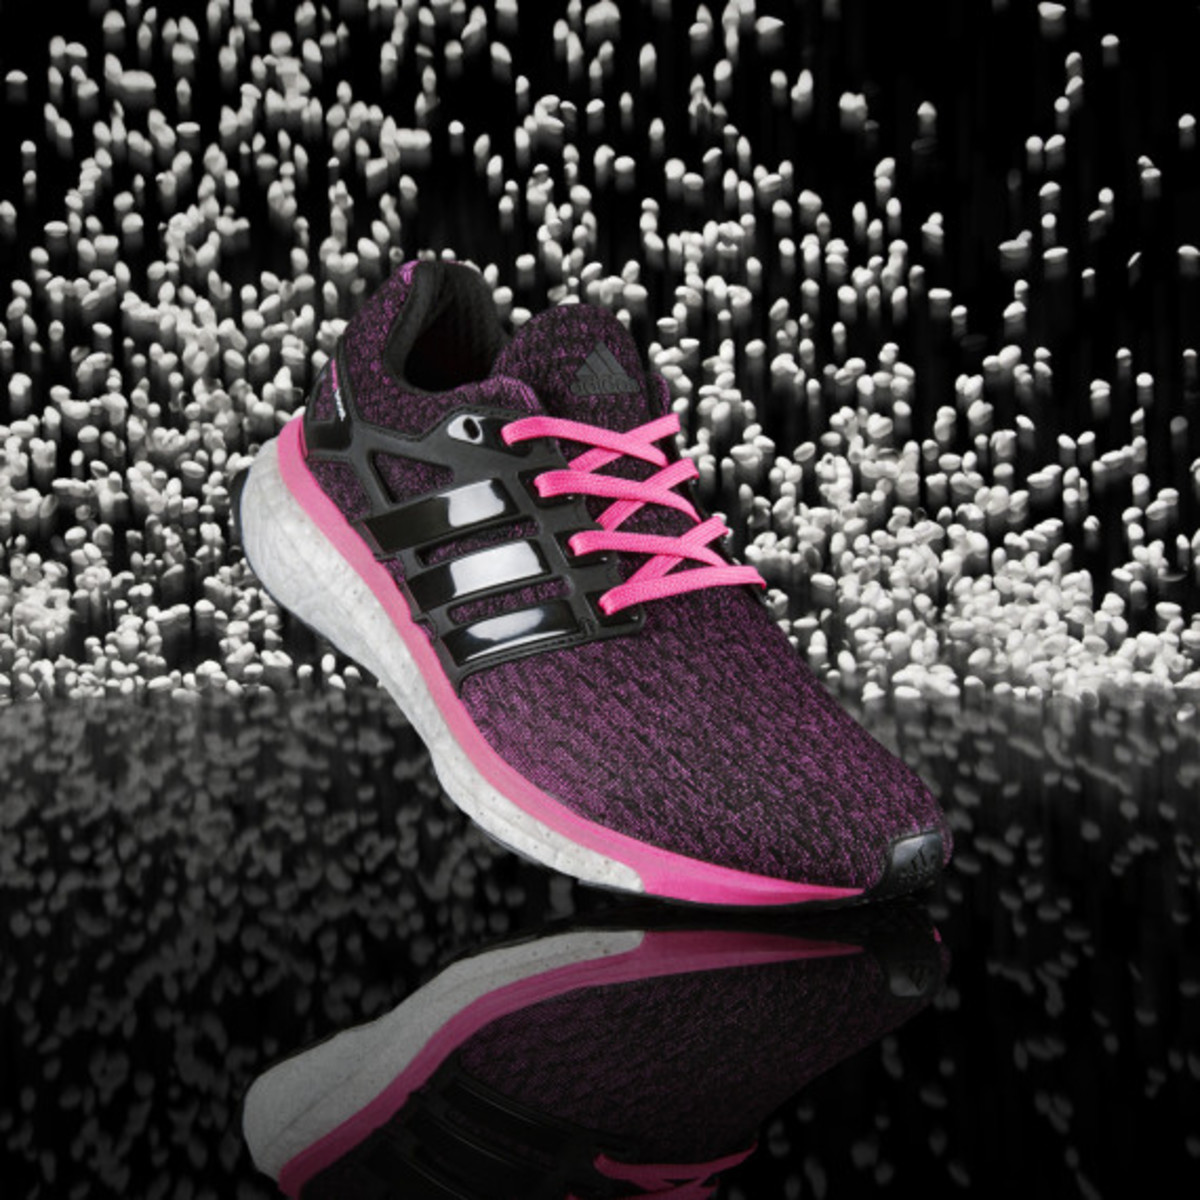 adidas-pure-boost-reveal-and-energy-boost-reveal-15